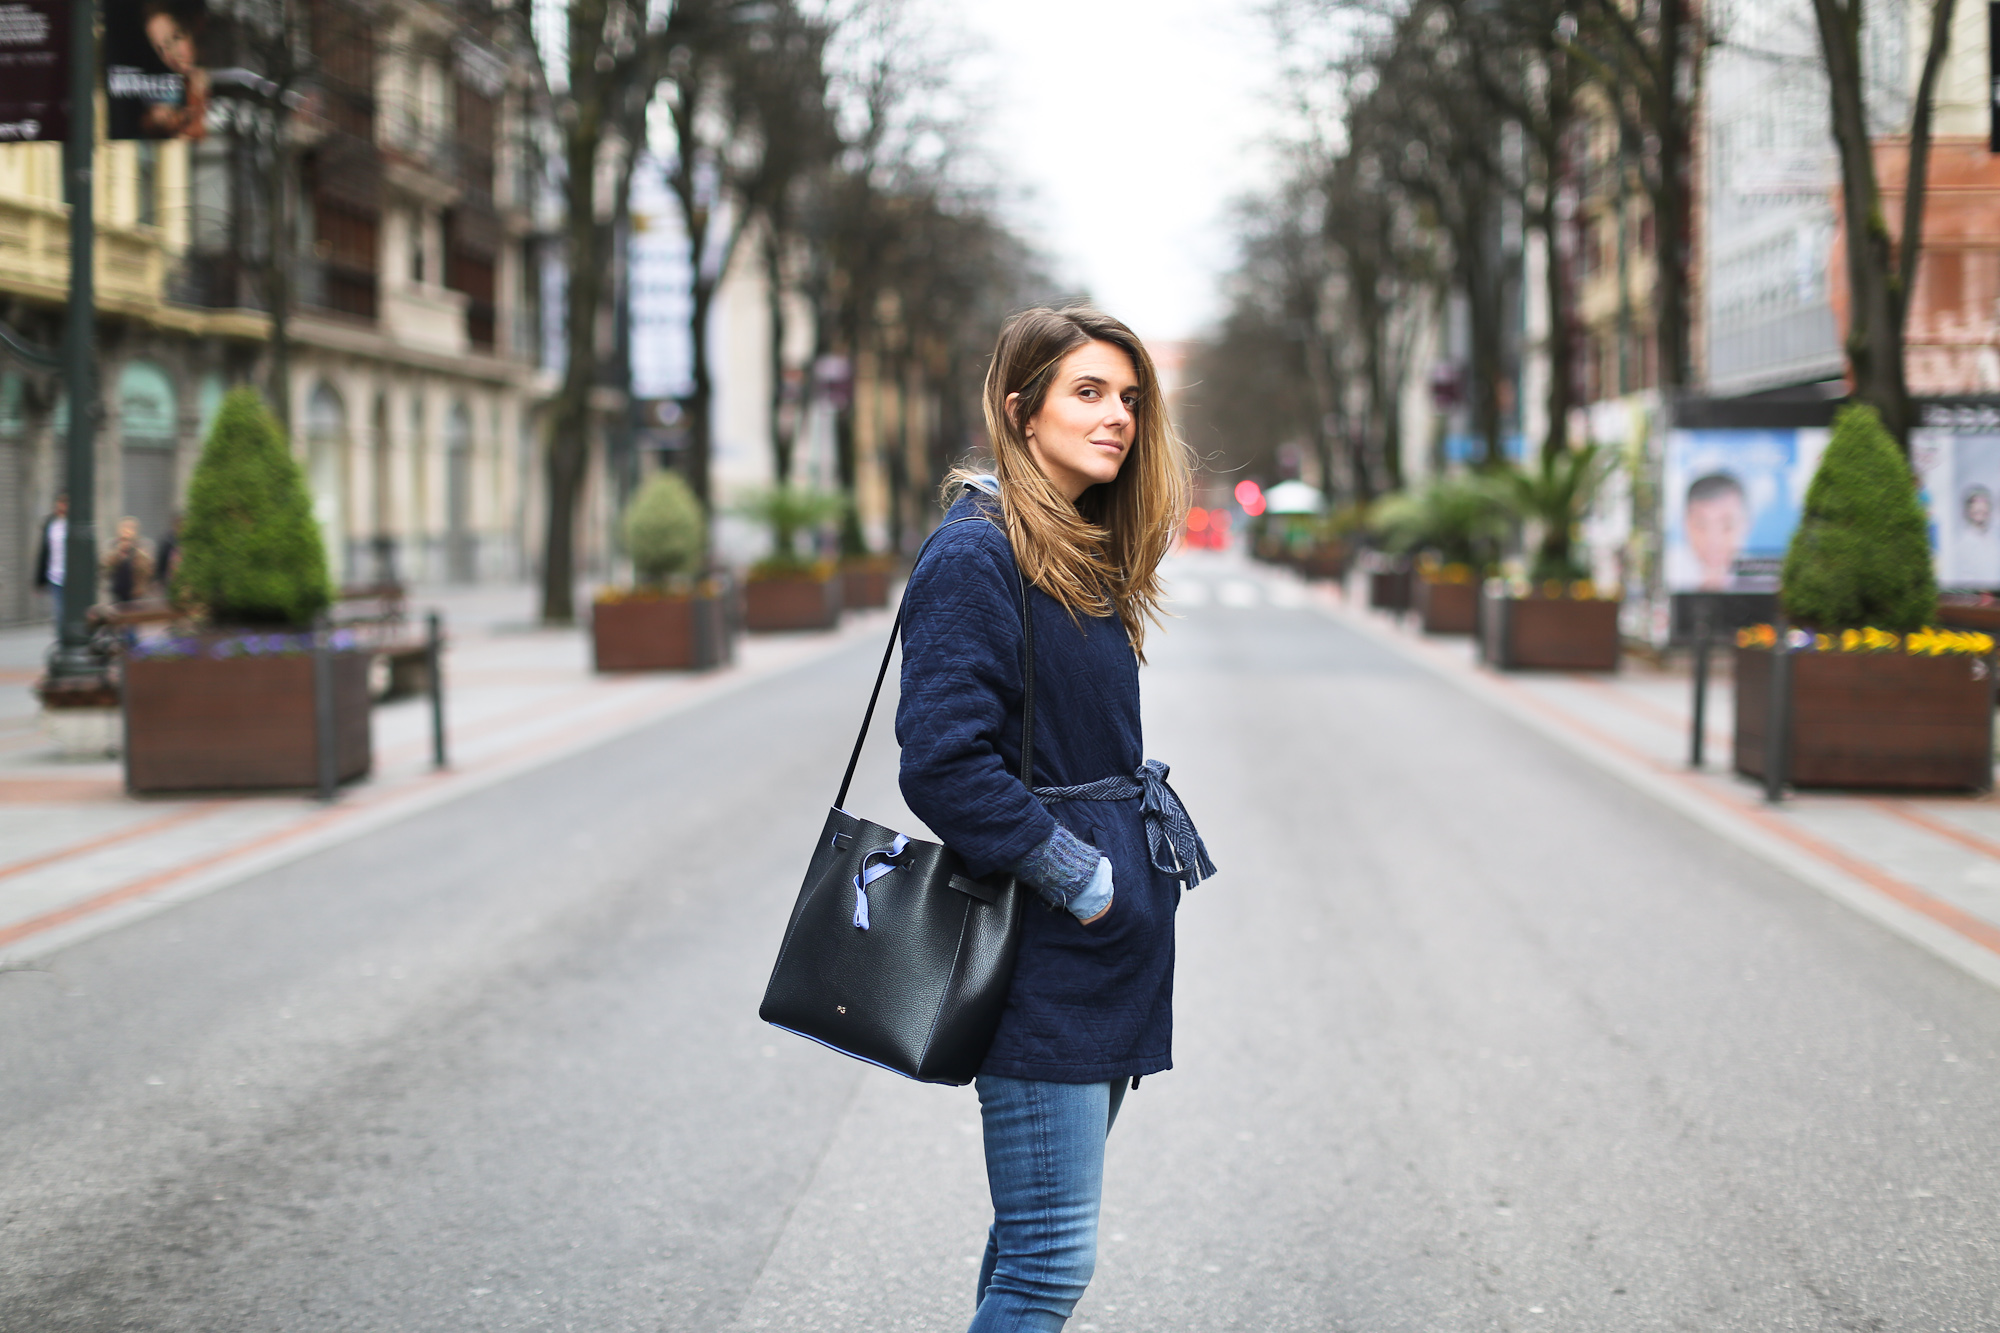 Clochet_streetstyle_pepejeans_skinny_jeans_purificaciongarcia_bucket_bag-7